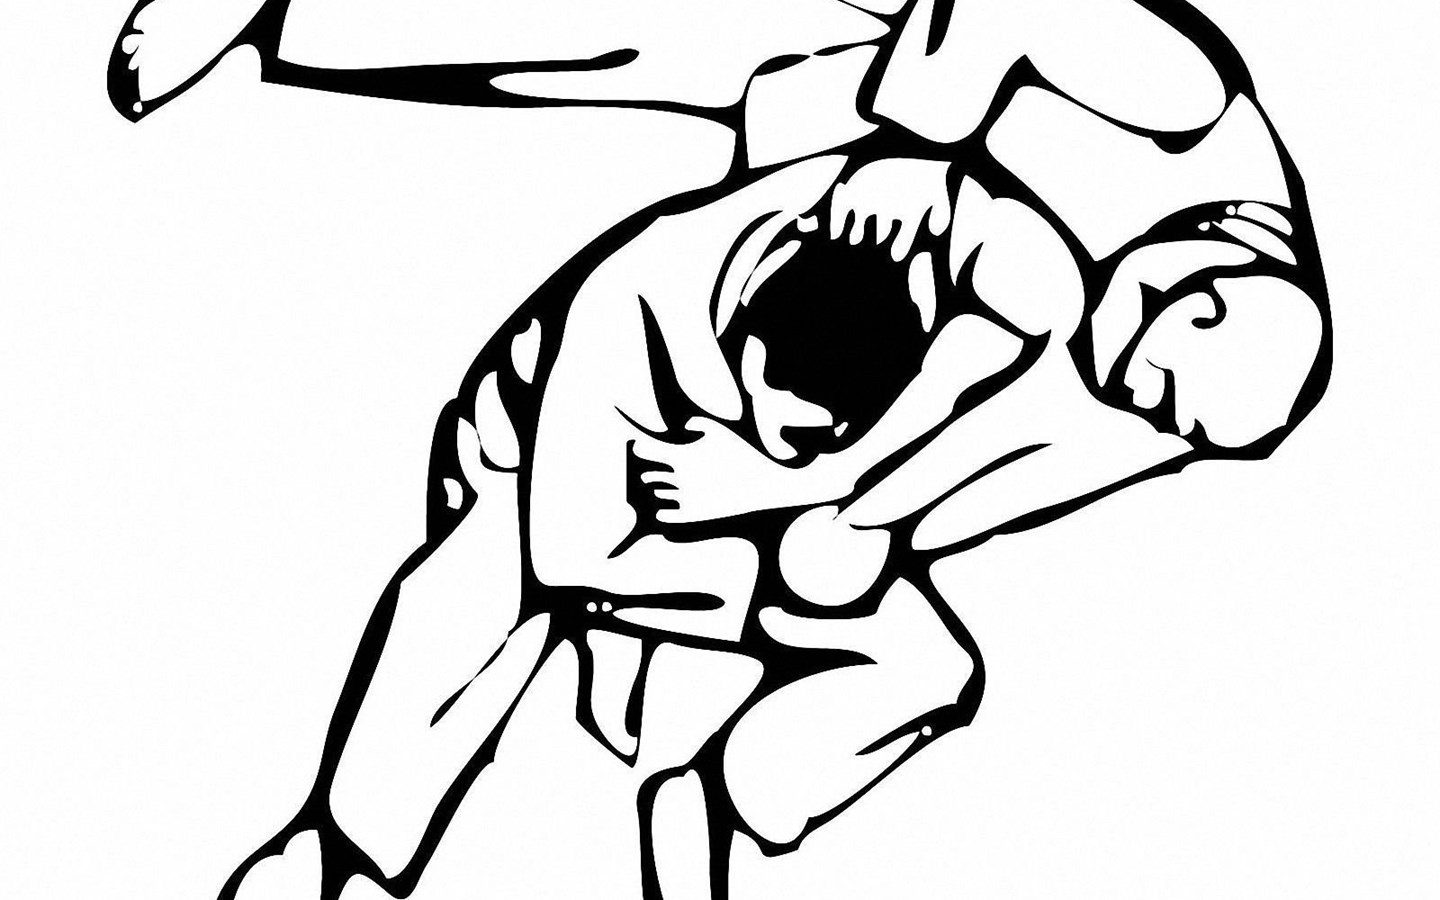 Judo Figur Wallpapers,Judo Wallpapers & Pictures Free